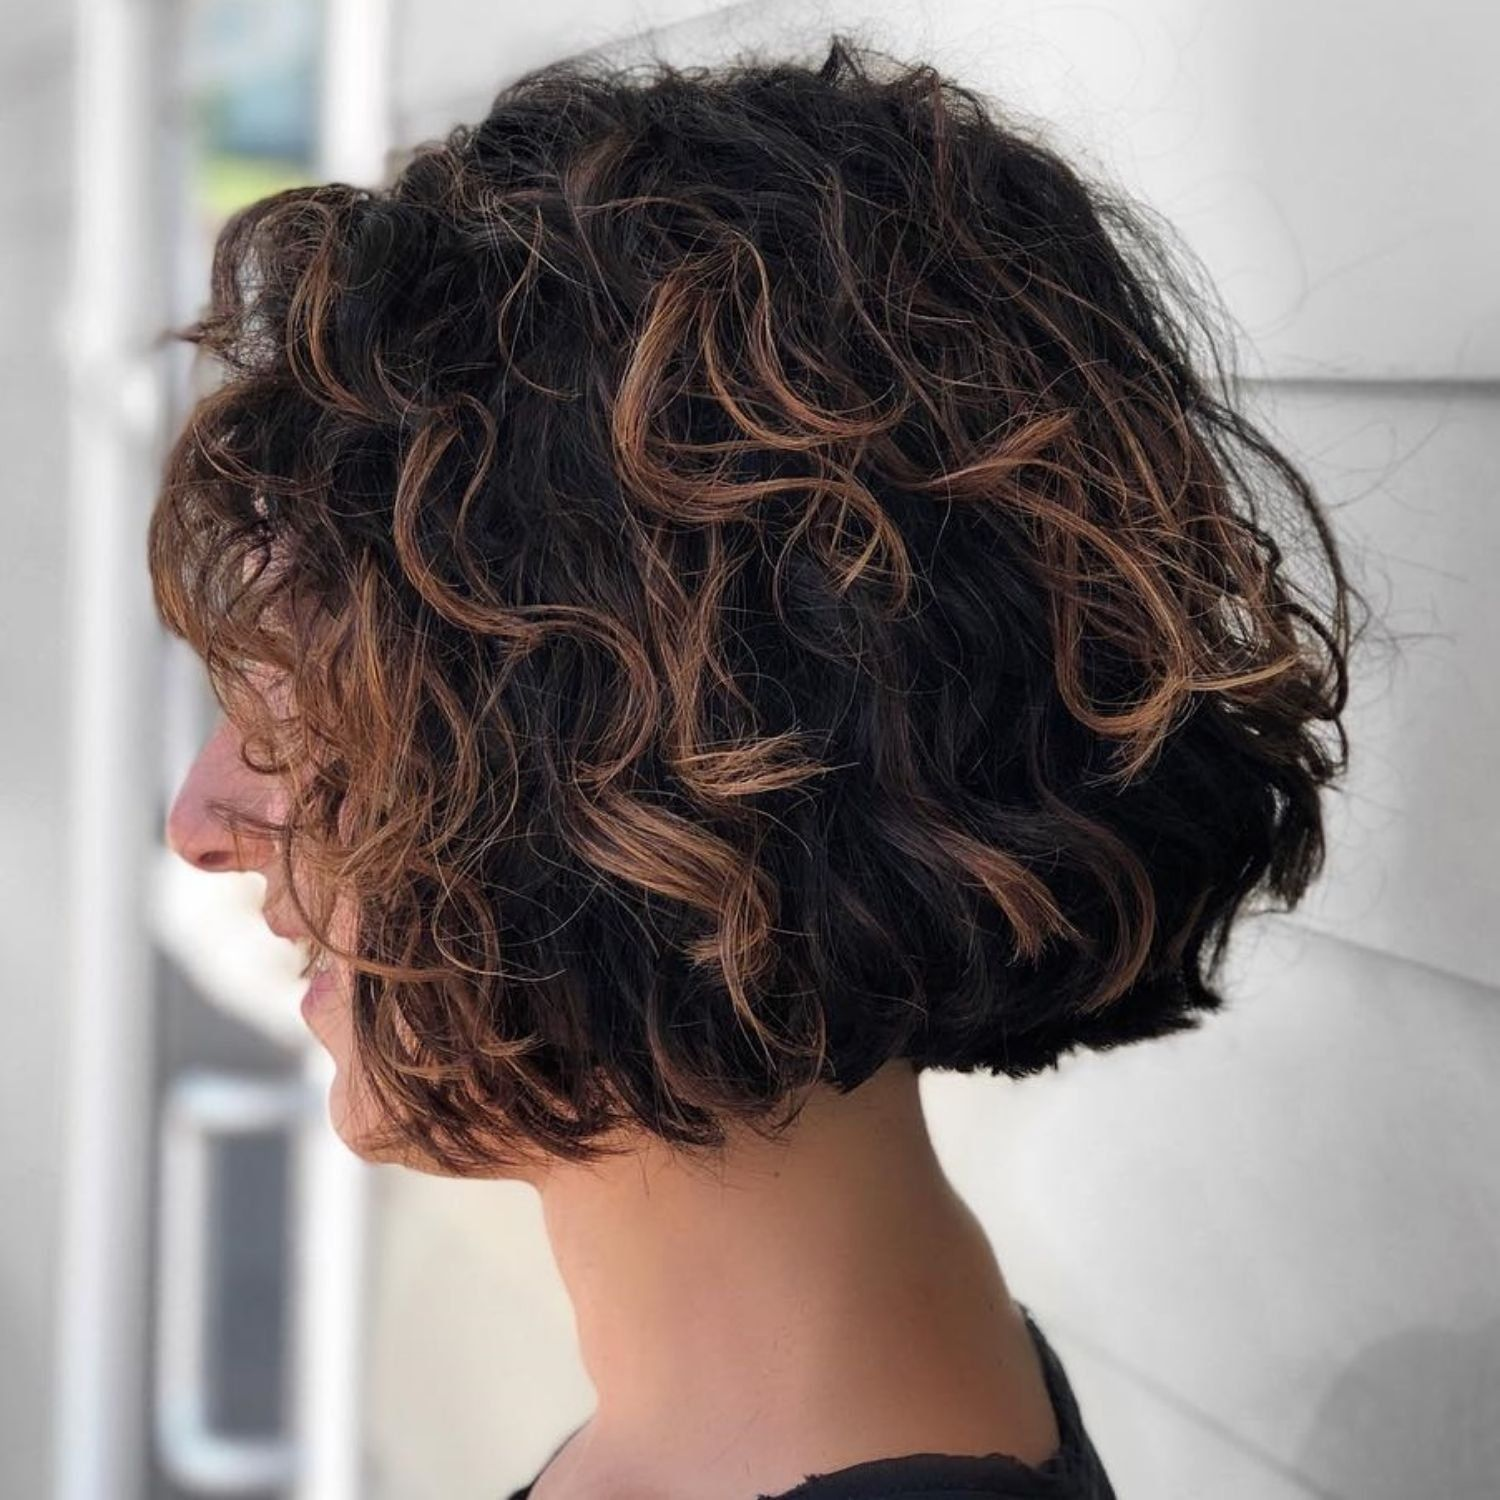 12 Hairstyles for Thin Curly Hair That Look Simply Amazing   Image ...